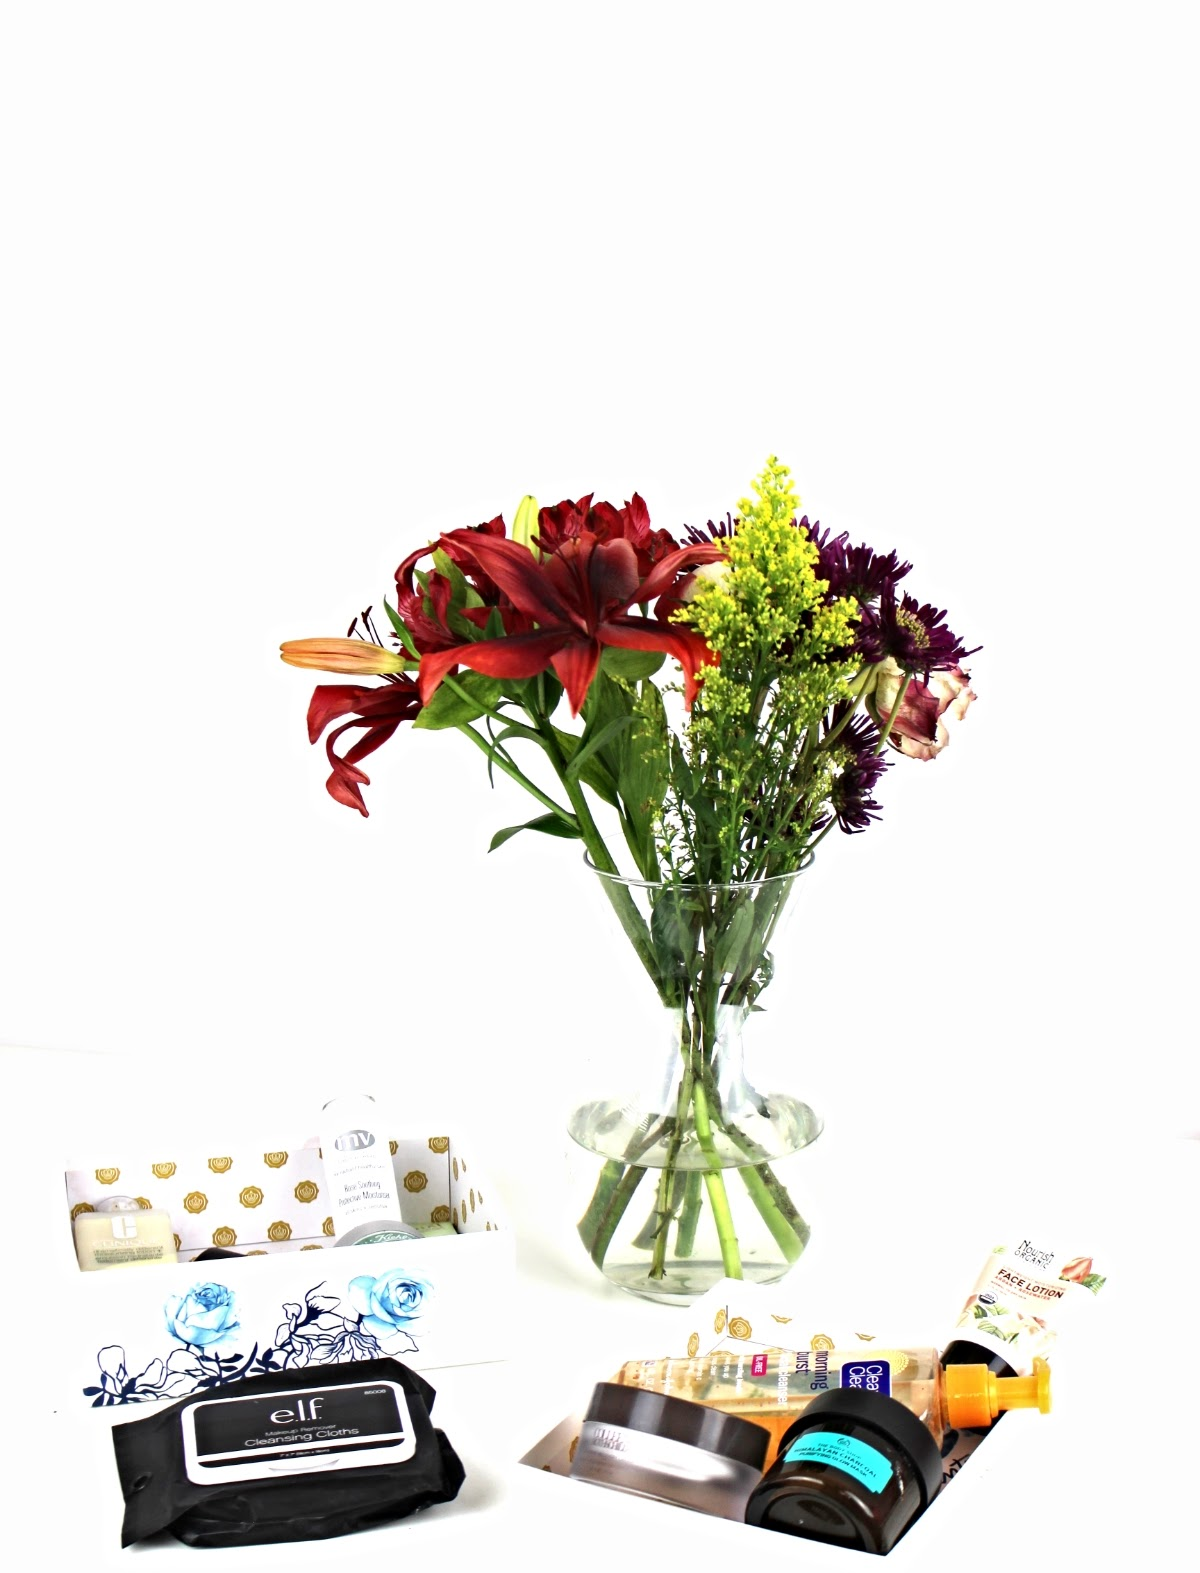 This is a photo of a beautiful flower bouquet, alongside all my favorite winter skin care products including Kiehl's, Kate Somerville, Colleen Rothschild, and many more!